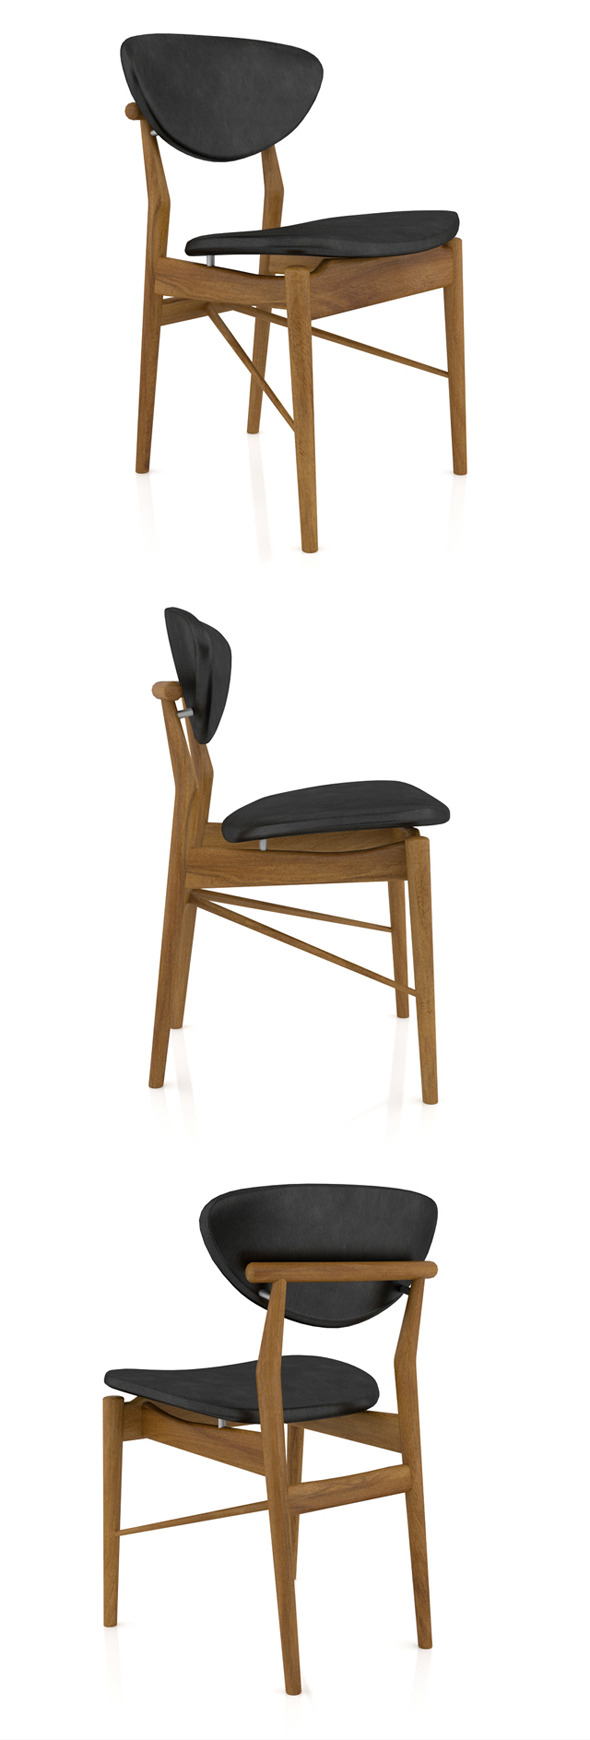 Finn Juhl 108 Chair - 3DOcean Item for Sale